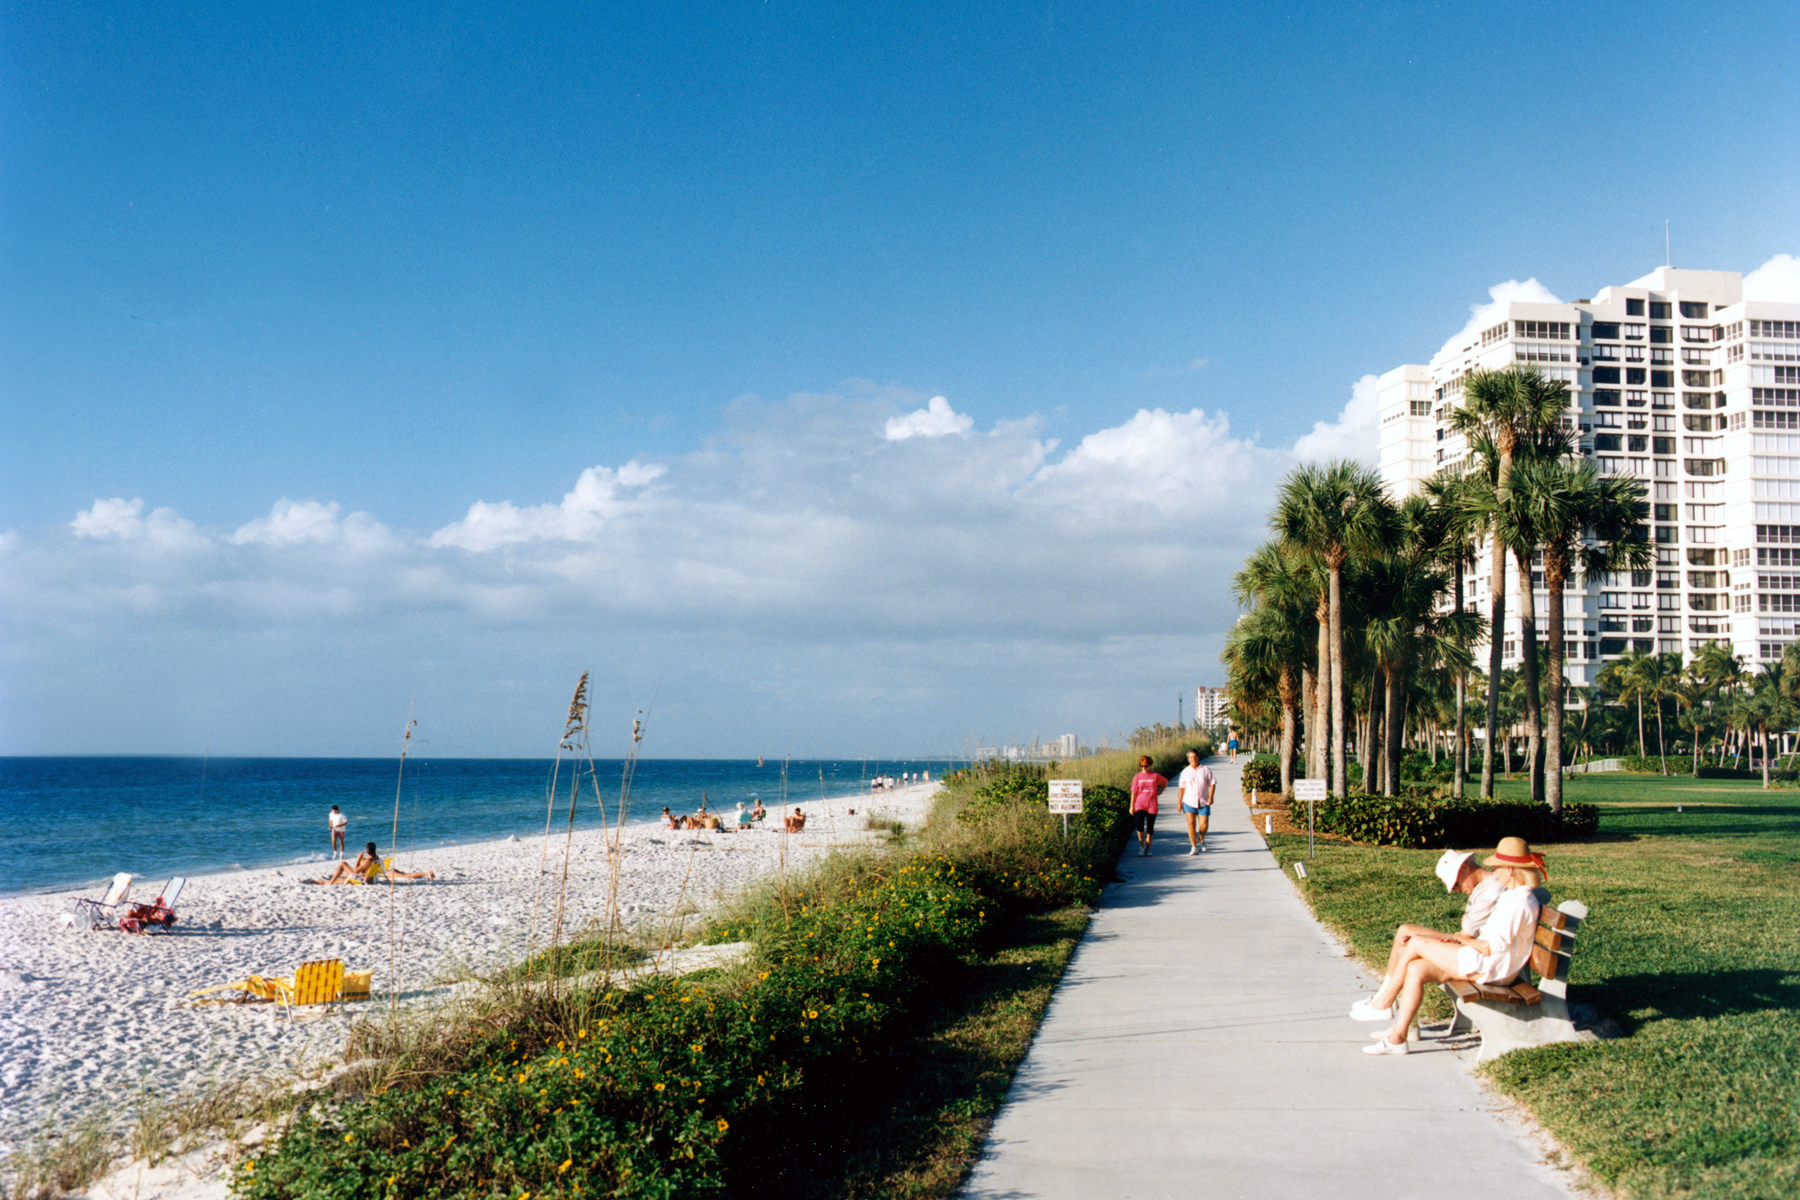 Condominium for Sale at PARK SHORE - BRITTANY 4021 Gulf Shore Blvd N 206, Naples, Florida 34103 United States